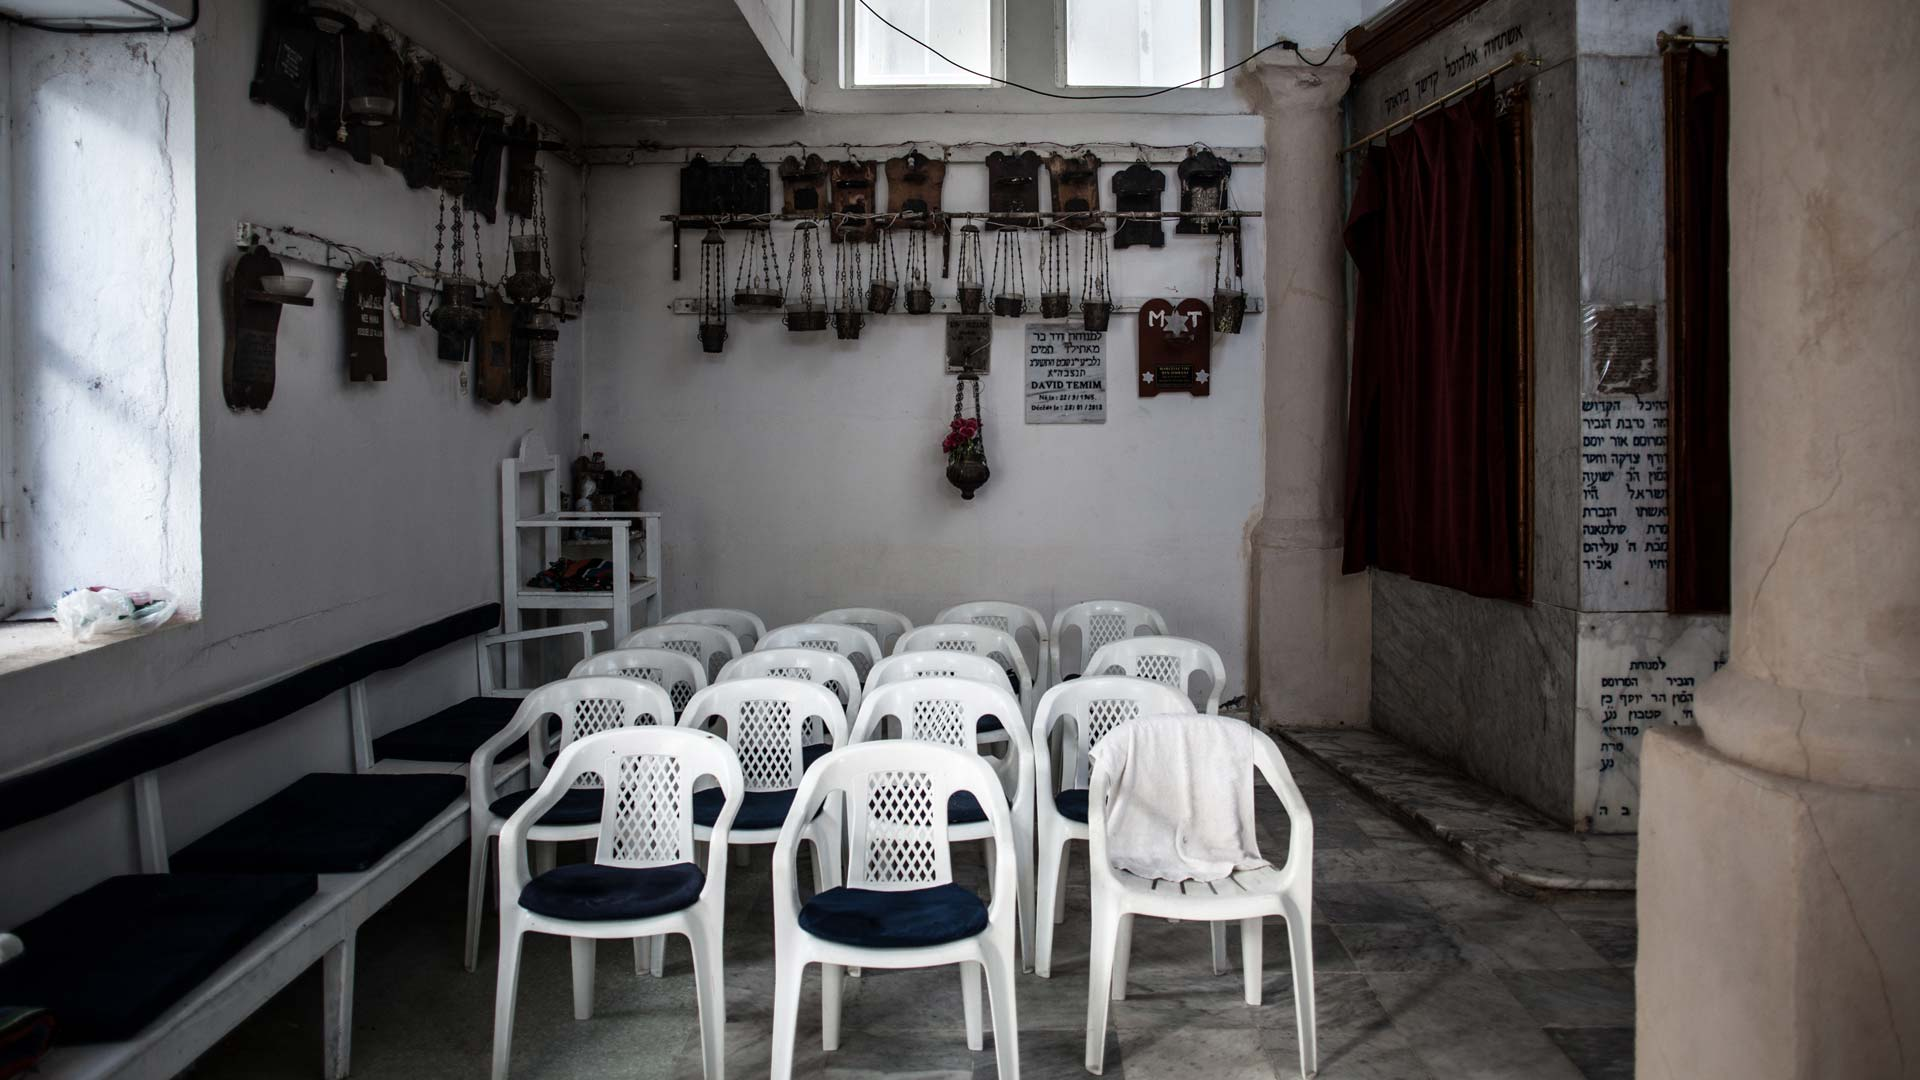 03-portrait-yves-tunisien-juif-chaises-synagogue1-inkyfada